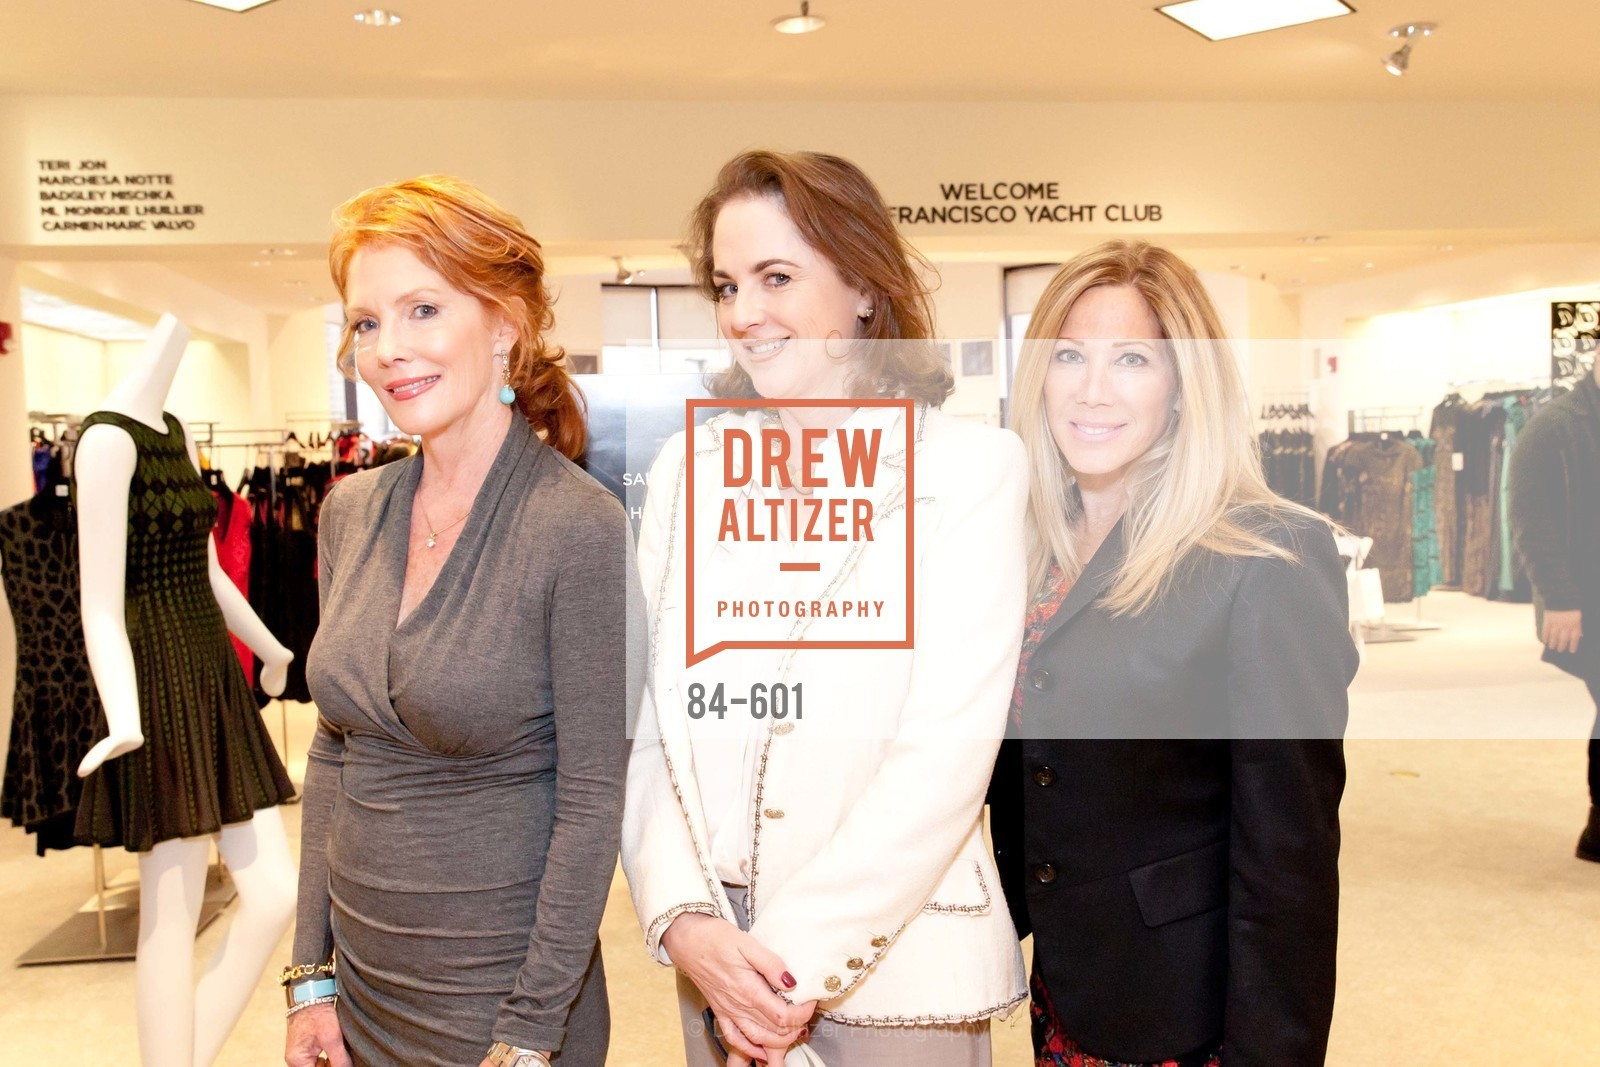 Maureen Herr, Lisa Harris, Renee Poulos, SAKS FIFTH AVENUE and HARPER'S BAZAAR Host the San Francisco Yacht Club, US, October 9th, 2014